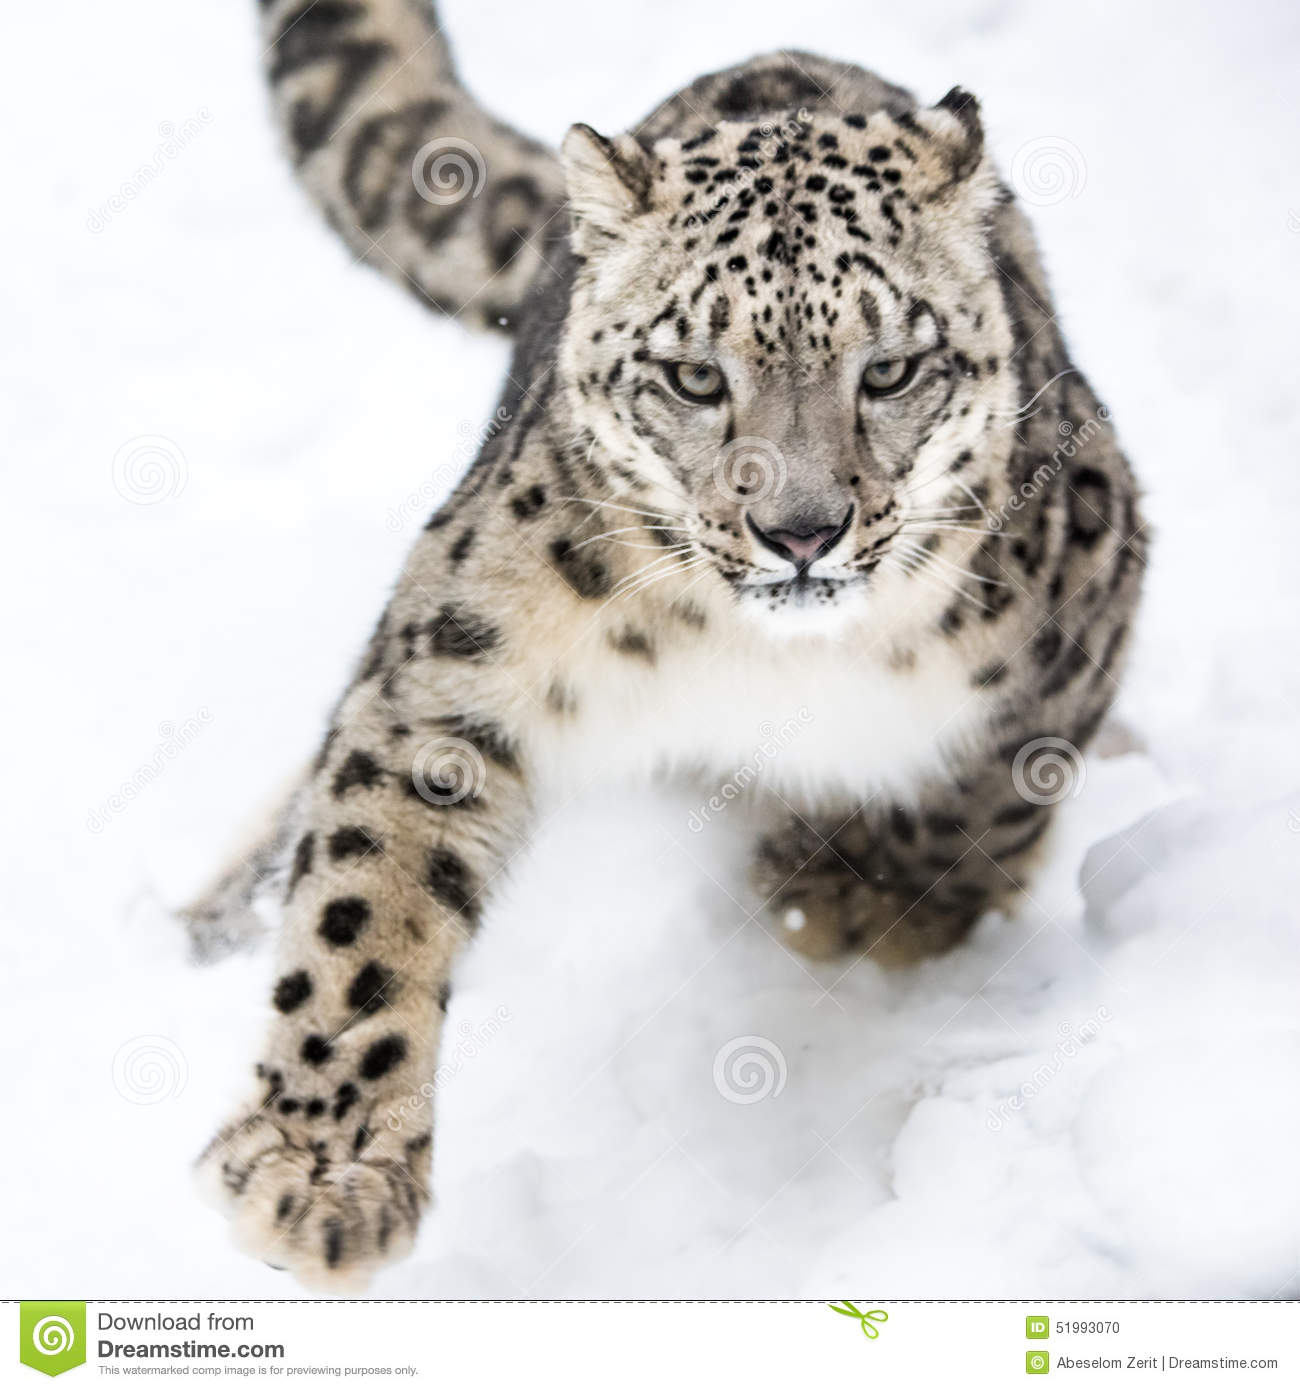 Snow Leopard Running in Snow.